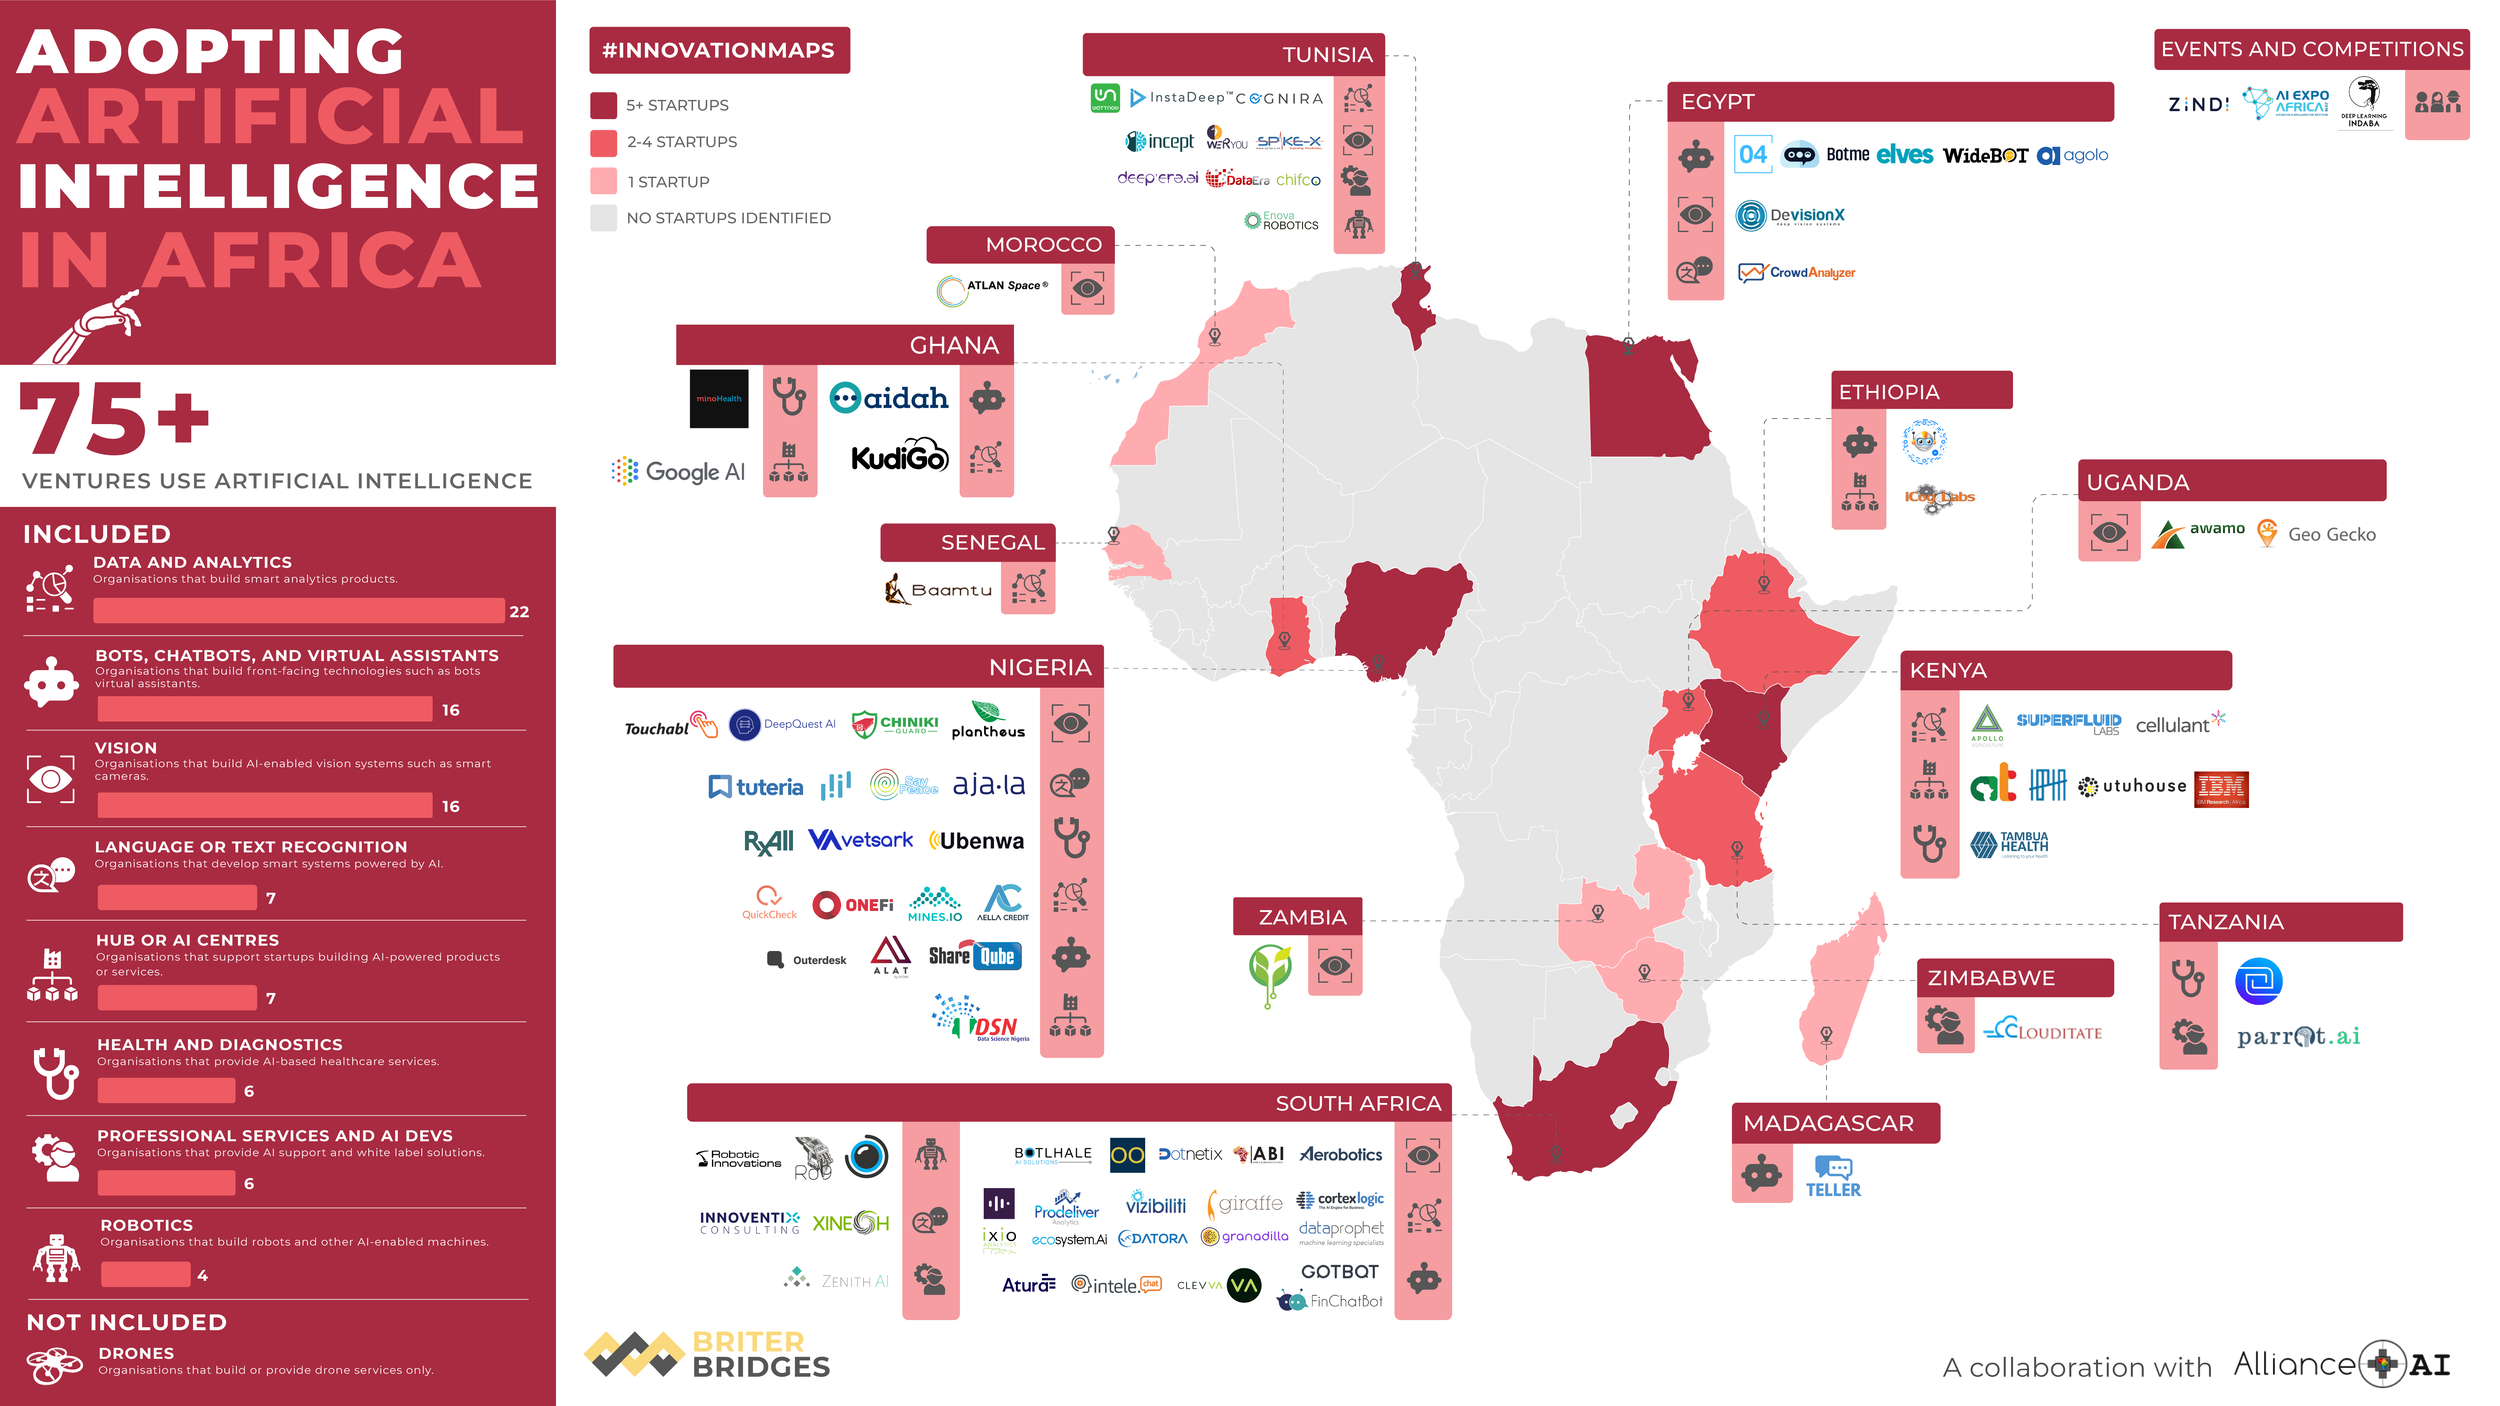 Companies using Artificial Intelligence / Machine Learning / Deep Learning in Africa - Q3 2019